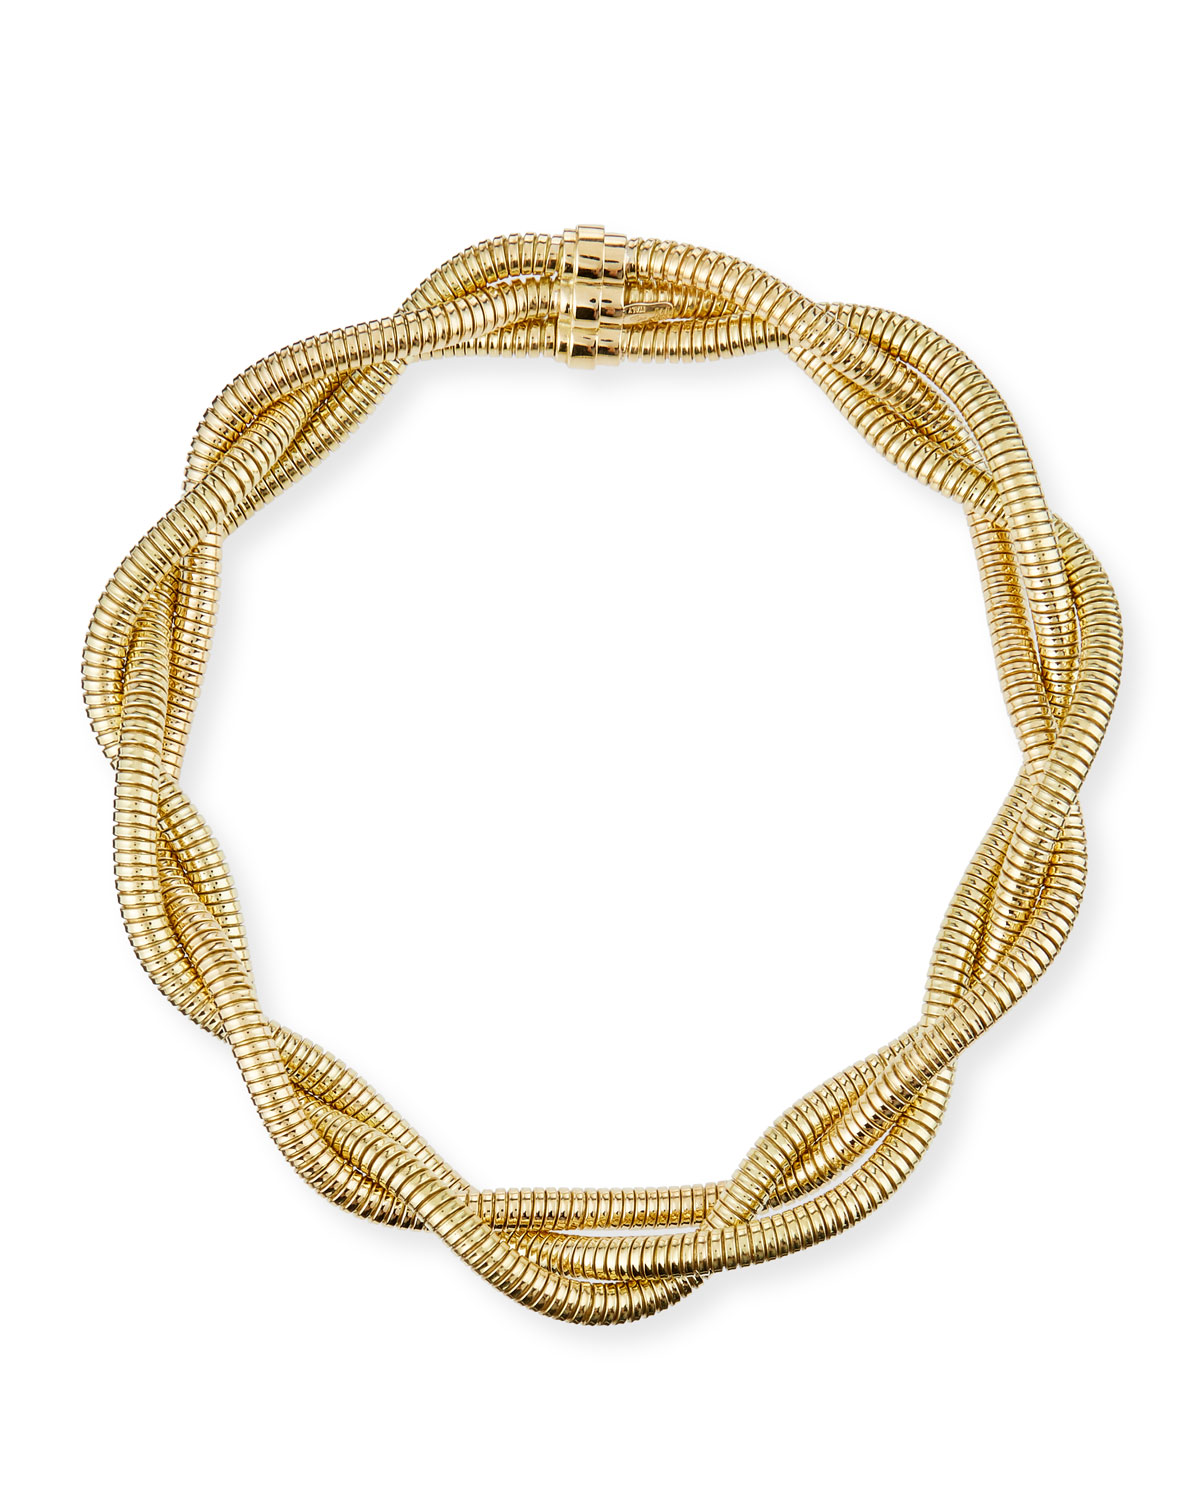 18k Gold 3-Row Braided Necklace